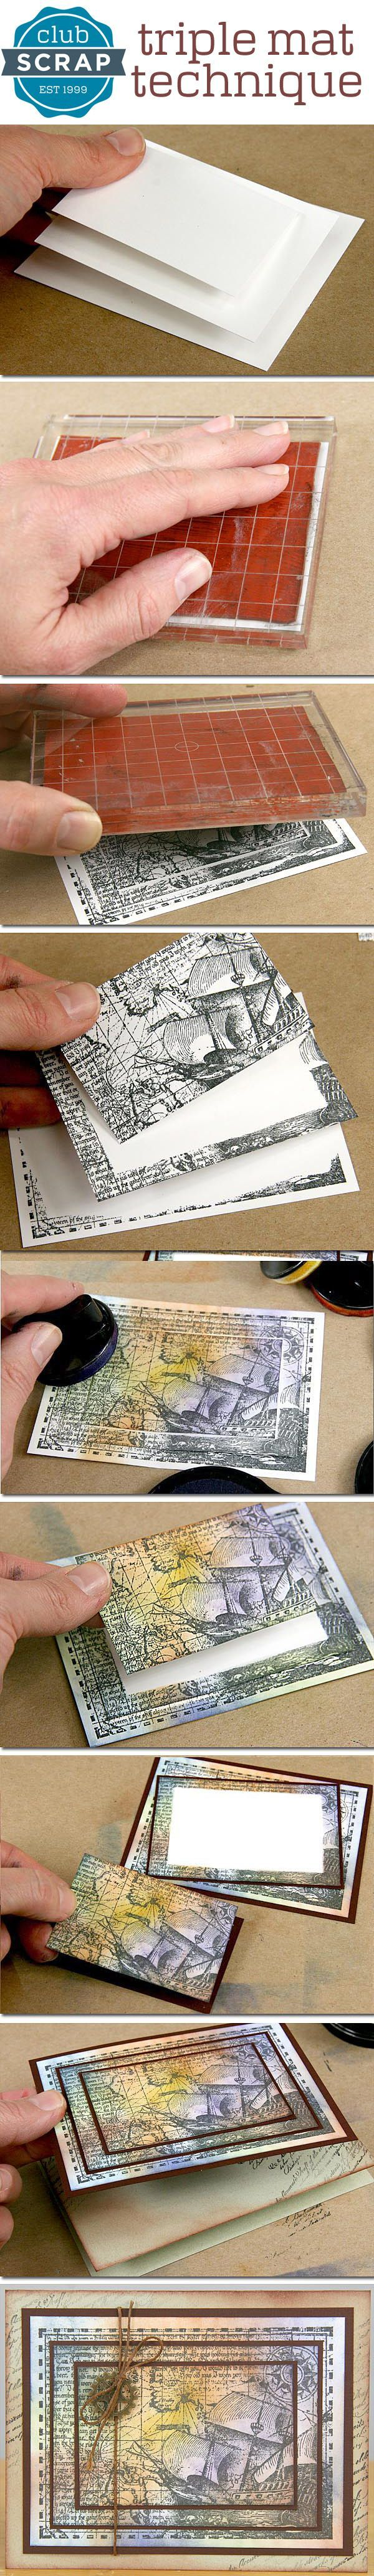 Quick and easy tutorial to add interest and dimension to your handmade greeting cards. #clubscrap #tutorial